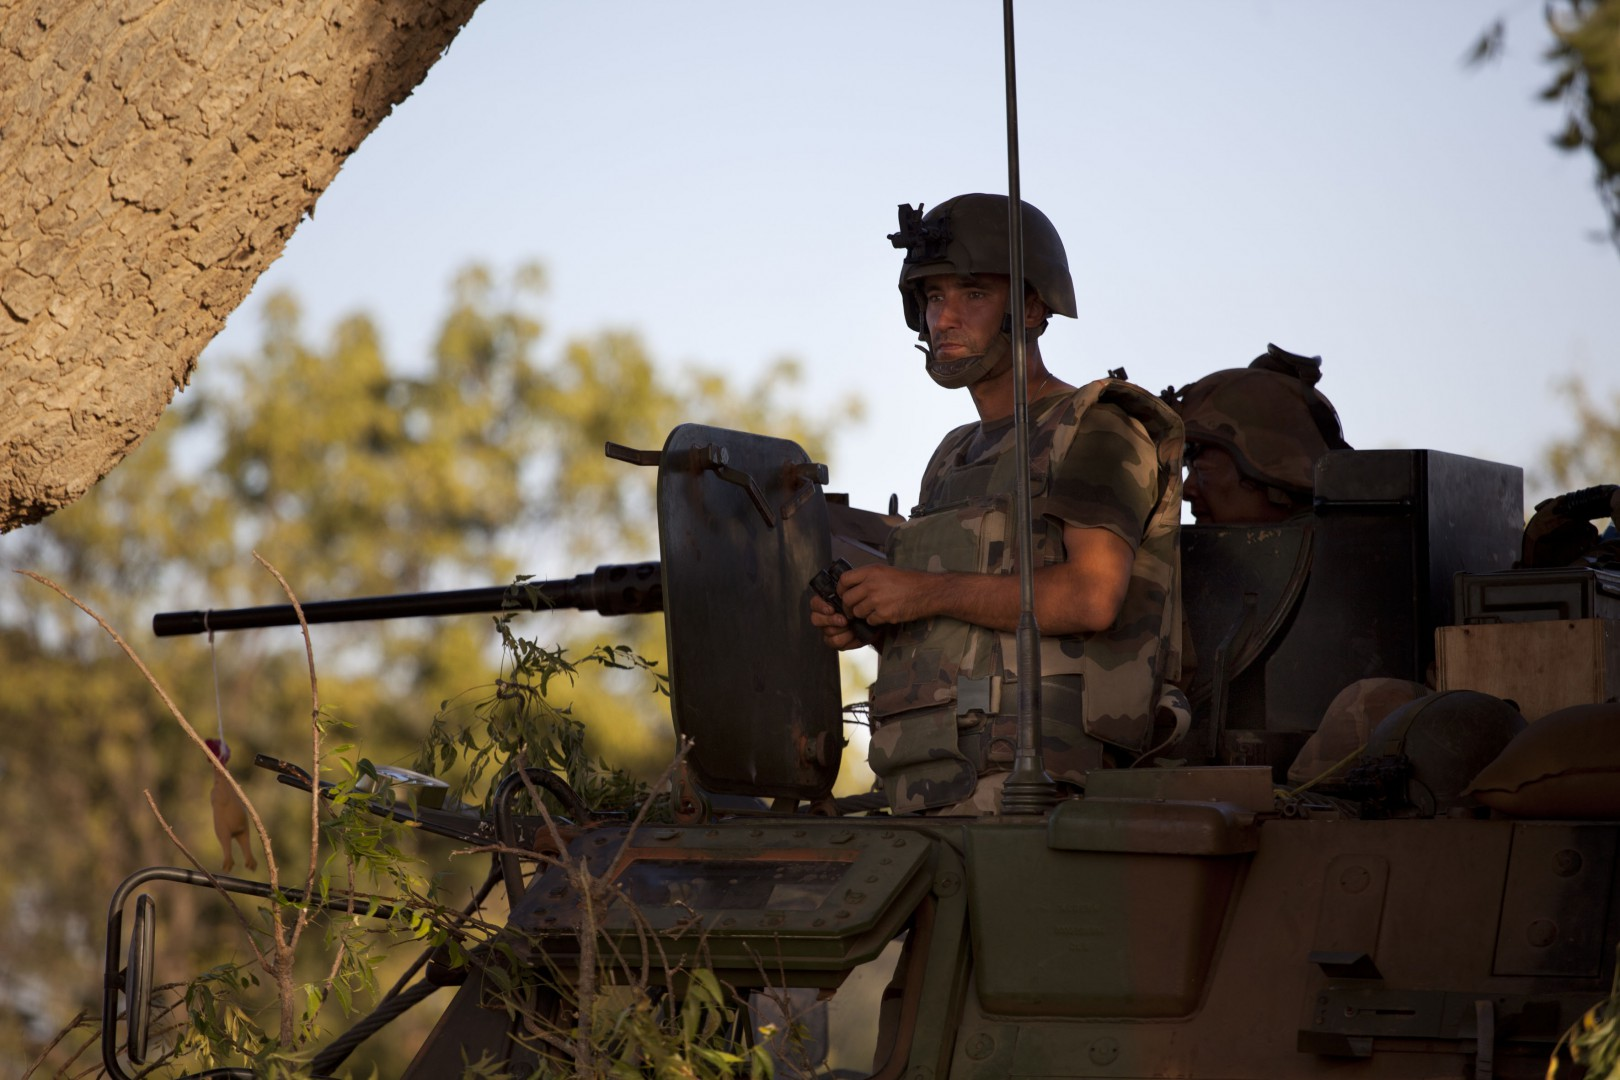 French Foreign Legion settled down has some kilometres in the North of the city of Markala (40km in the North of Segou on the road of Diabaly) in Mali, on January 18, 2013. Photo by Julien Tack/ABACAPRESS.COM     LaPresse  -- Only Italy